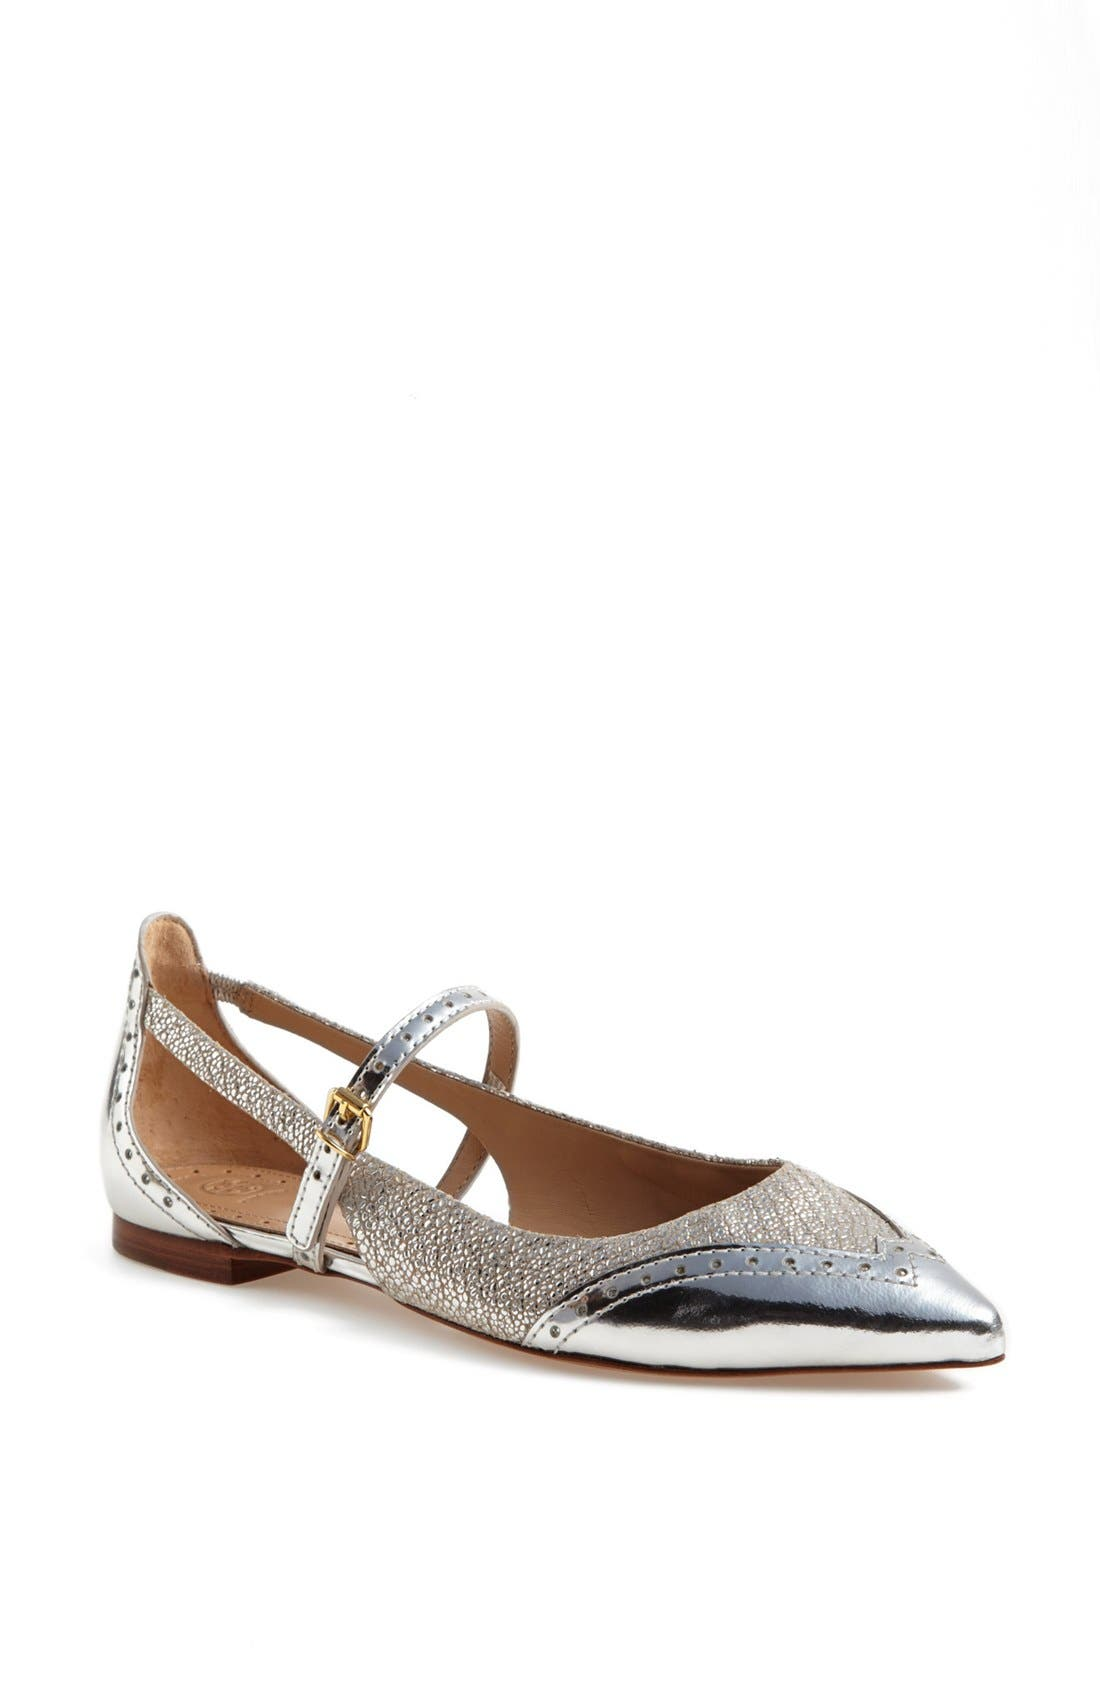 Alternate Image 1 Selected - Tory Burch 'Bernadette' Flat